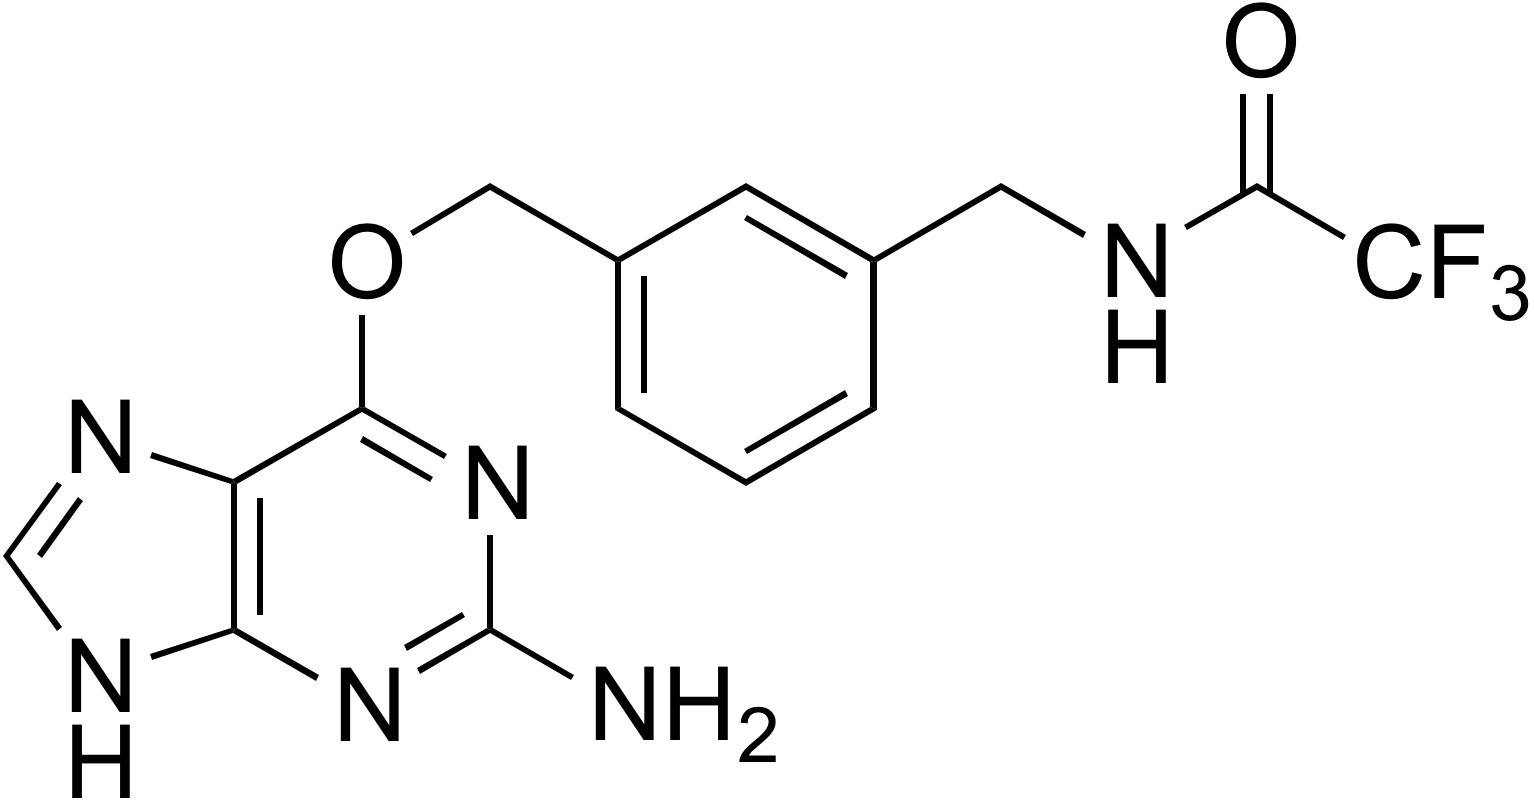 O6-[3-(Trifluoroacetamidomethyl)benzyl]guanine